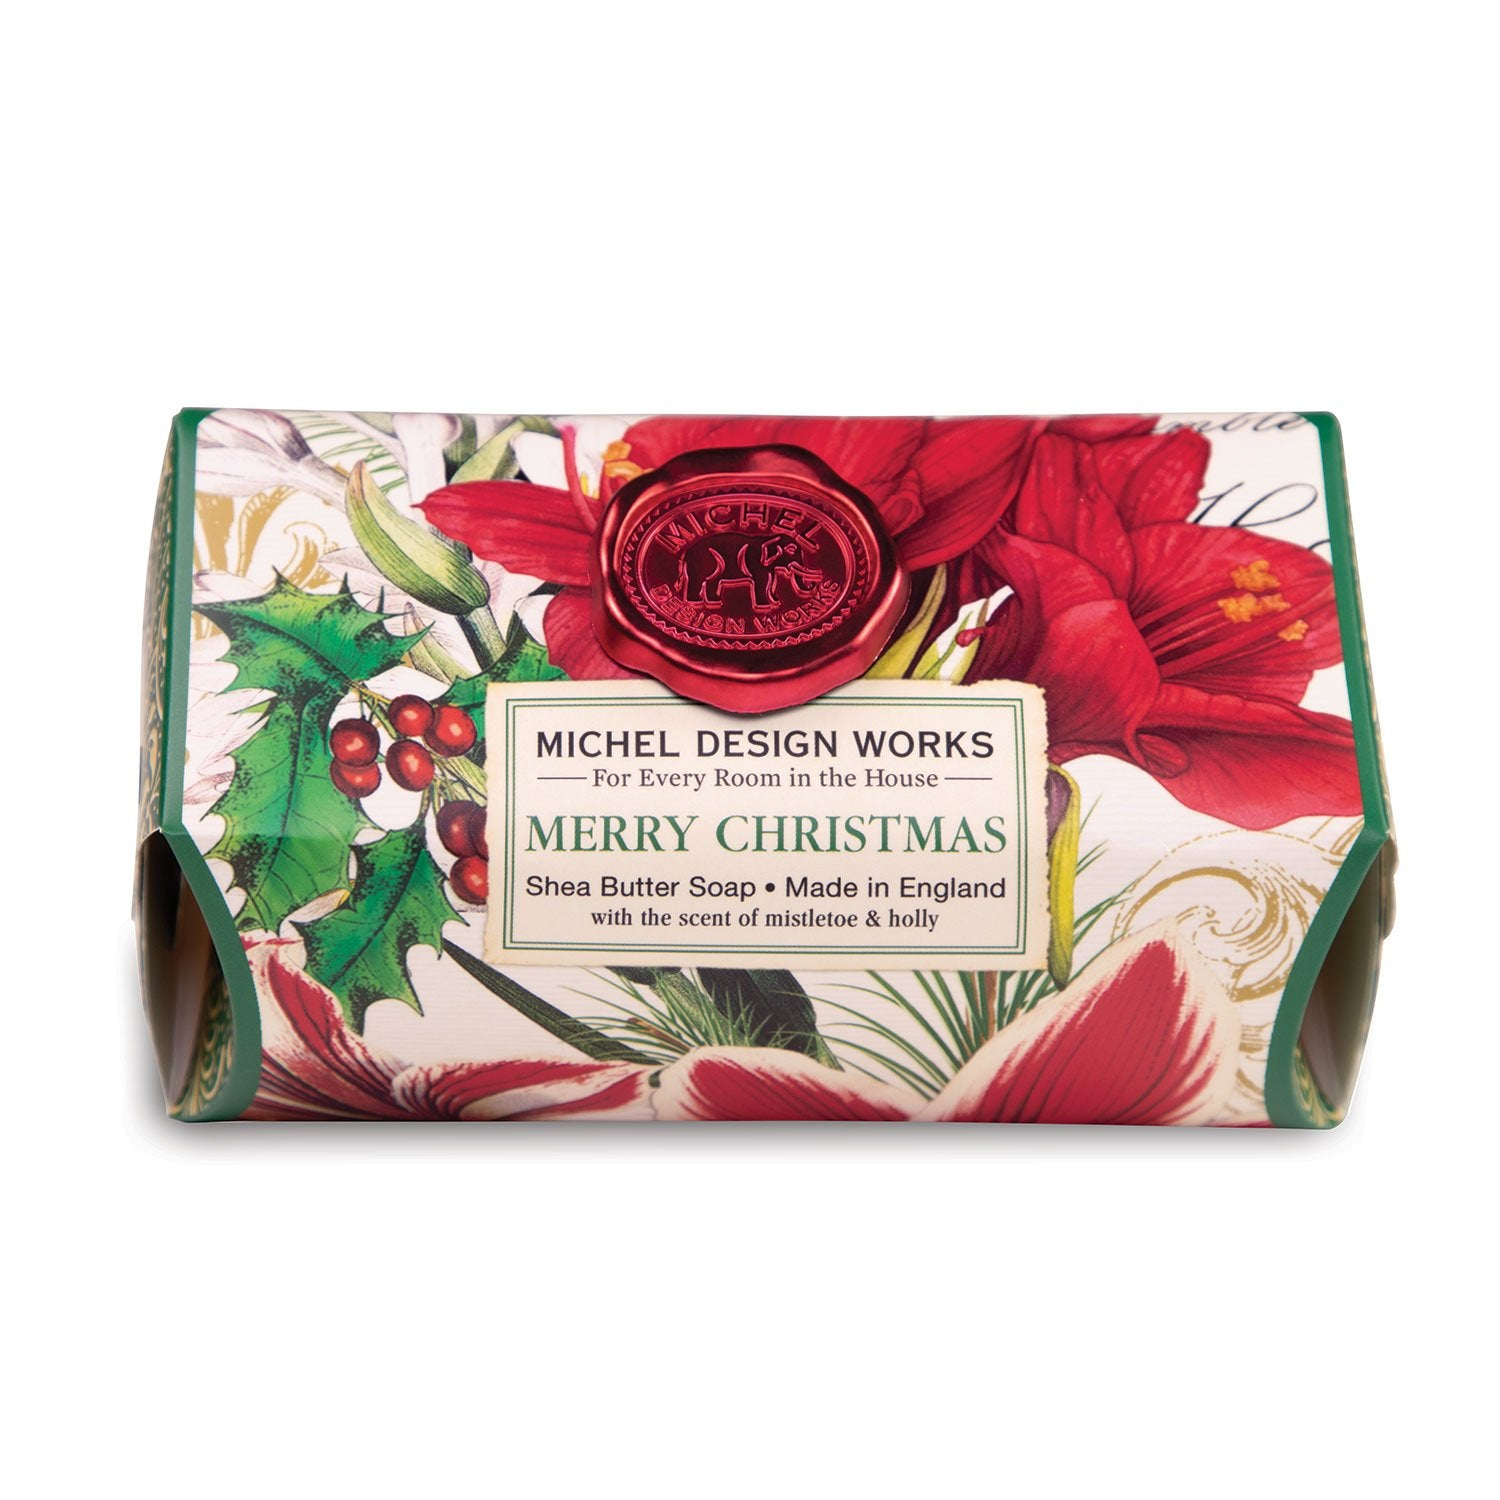 Merry Christmas Large Bath Soap Bar